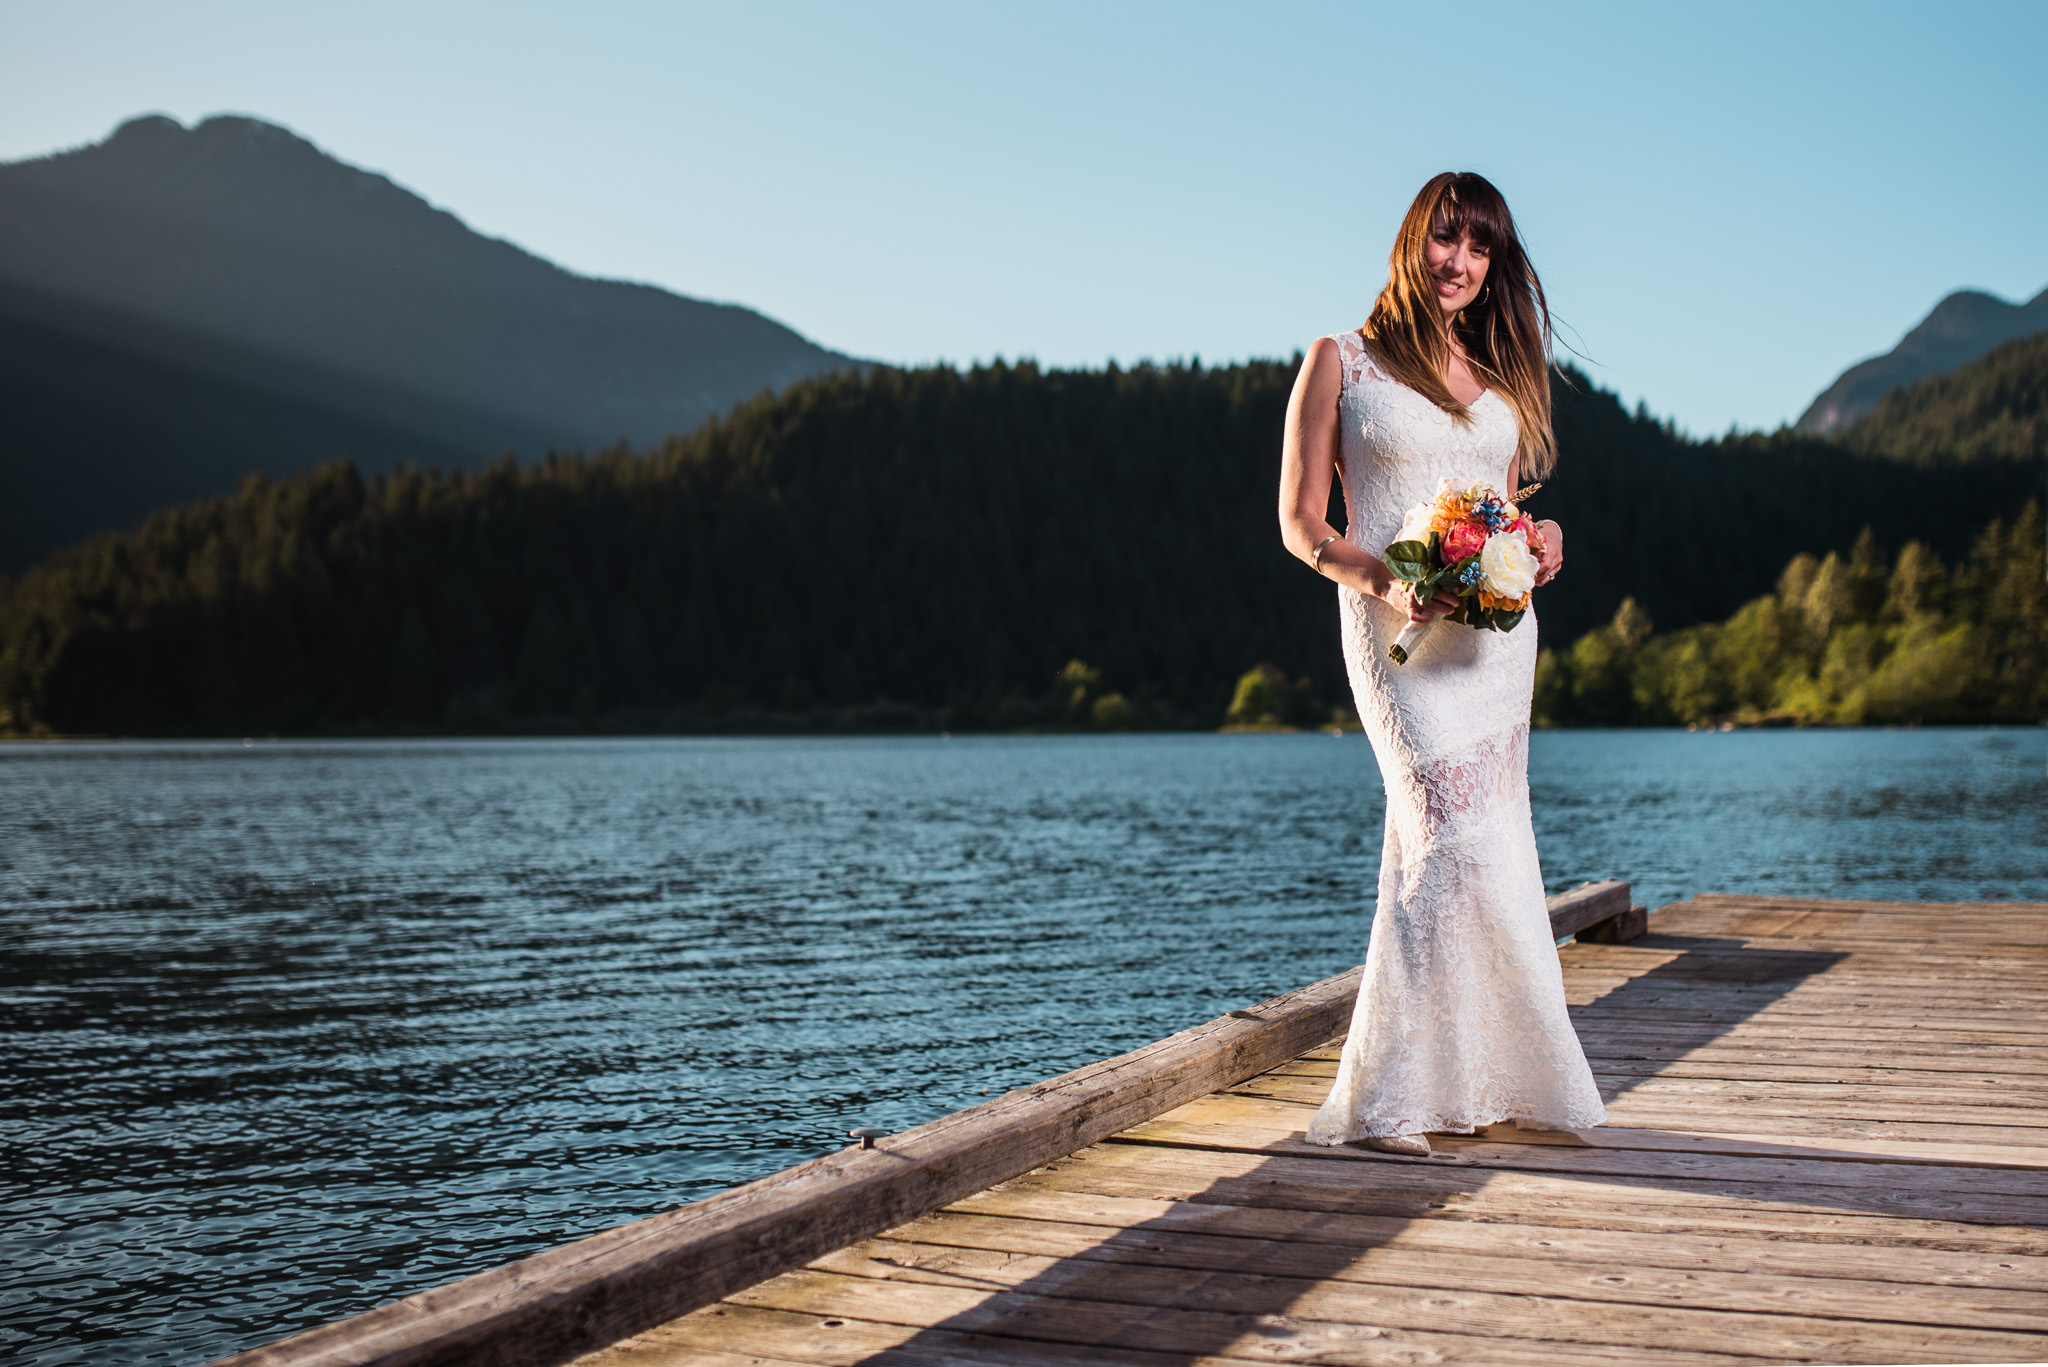 Melanie-Matt-Pitt-Lake-Post-Wedding-Shoot-Victoria-Wedding-Photographers-13.jpg